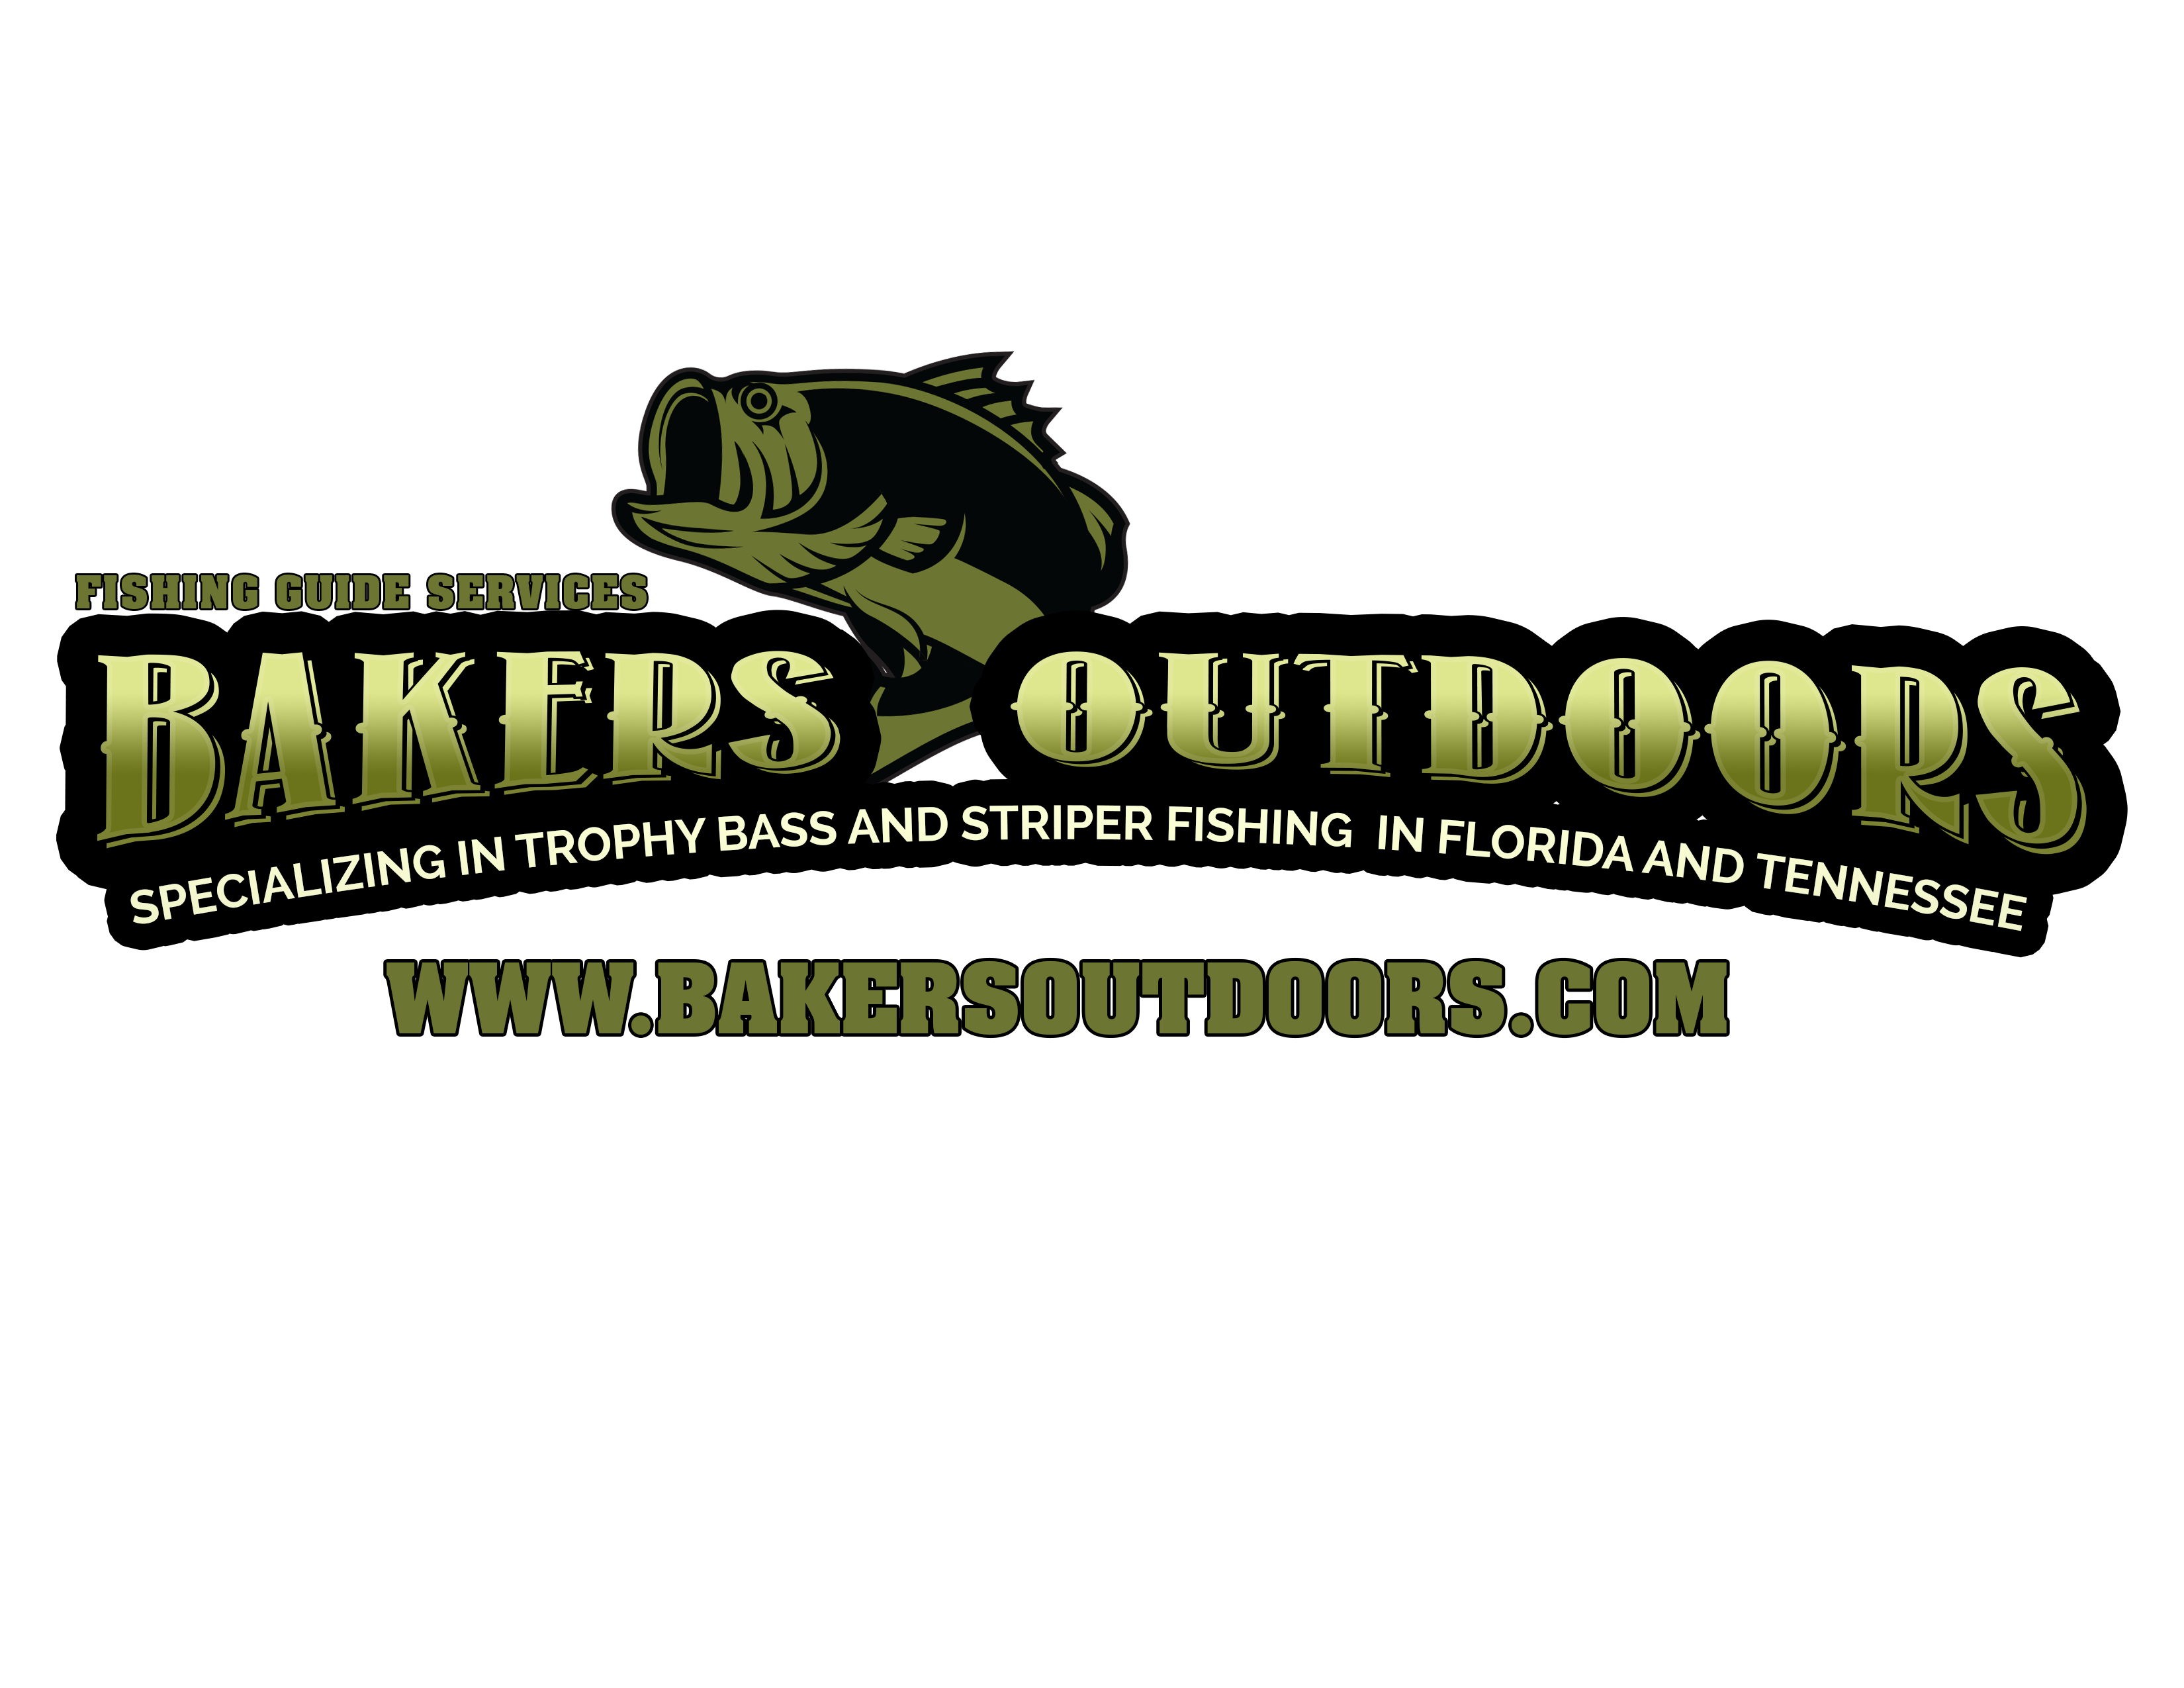 Bakers Outdoors Fishing Guide Services